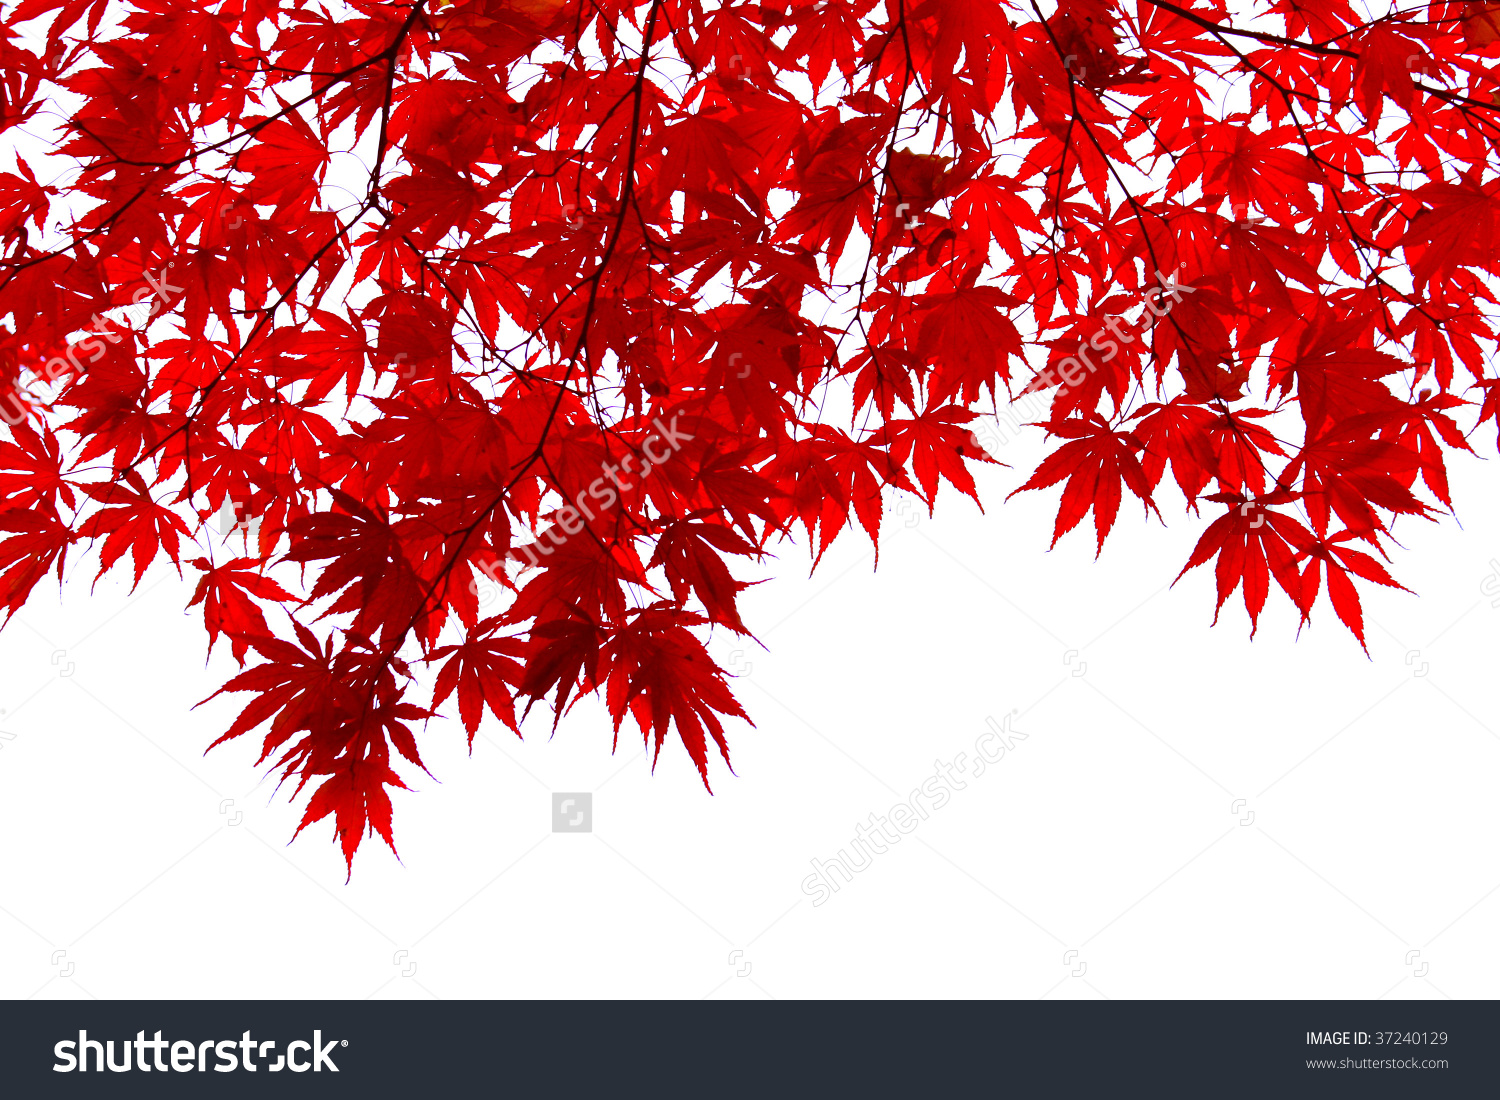 Red Japanese Maple Leaves Stock Photo 37240129.